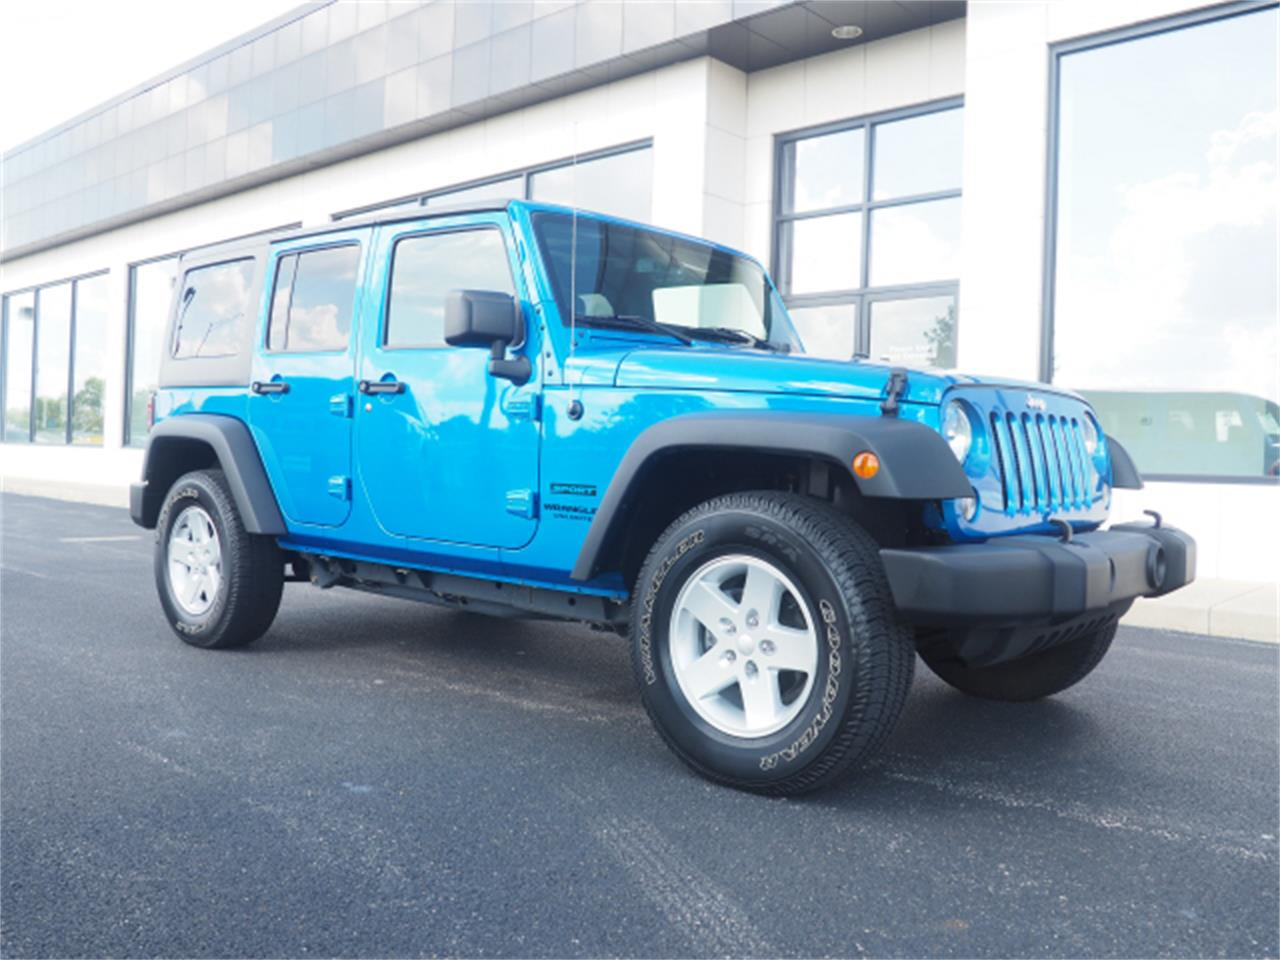 Large Picture of 2015 Wrangler located in Marysville Ohio - $27,999.00 - PPKW